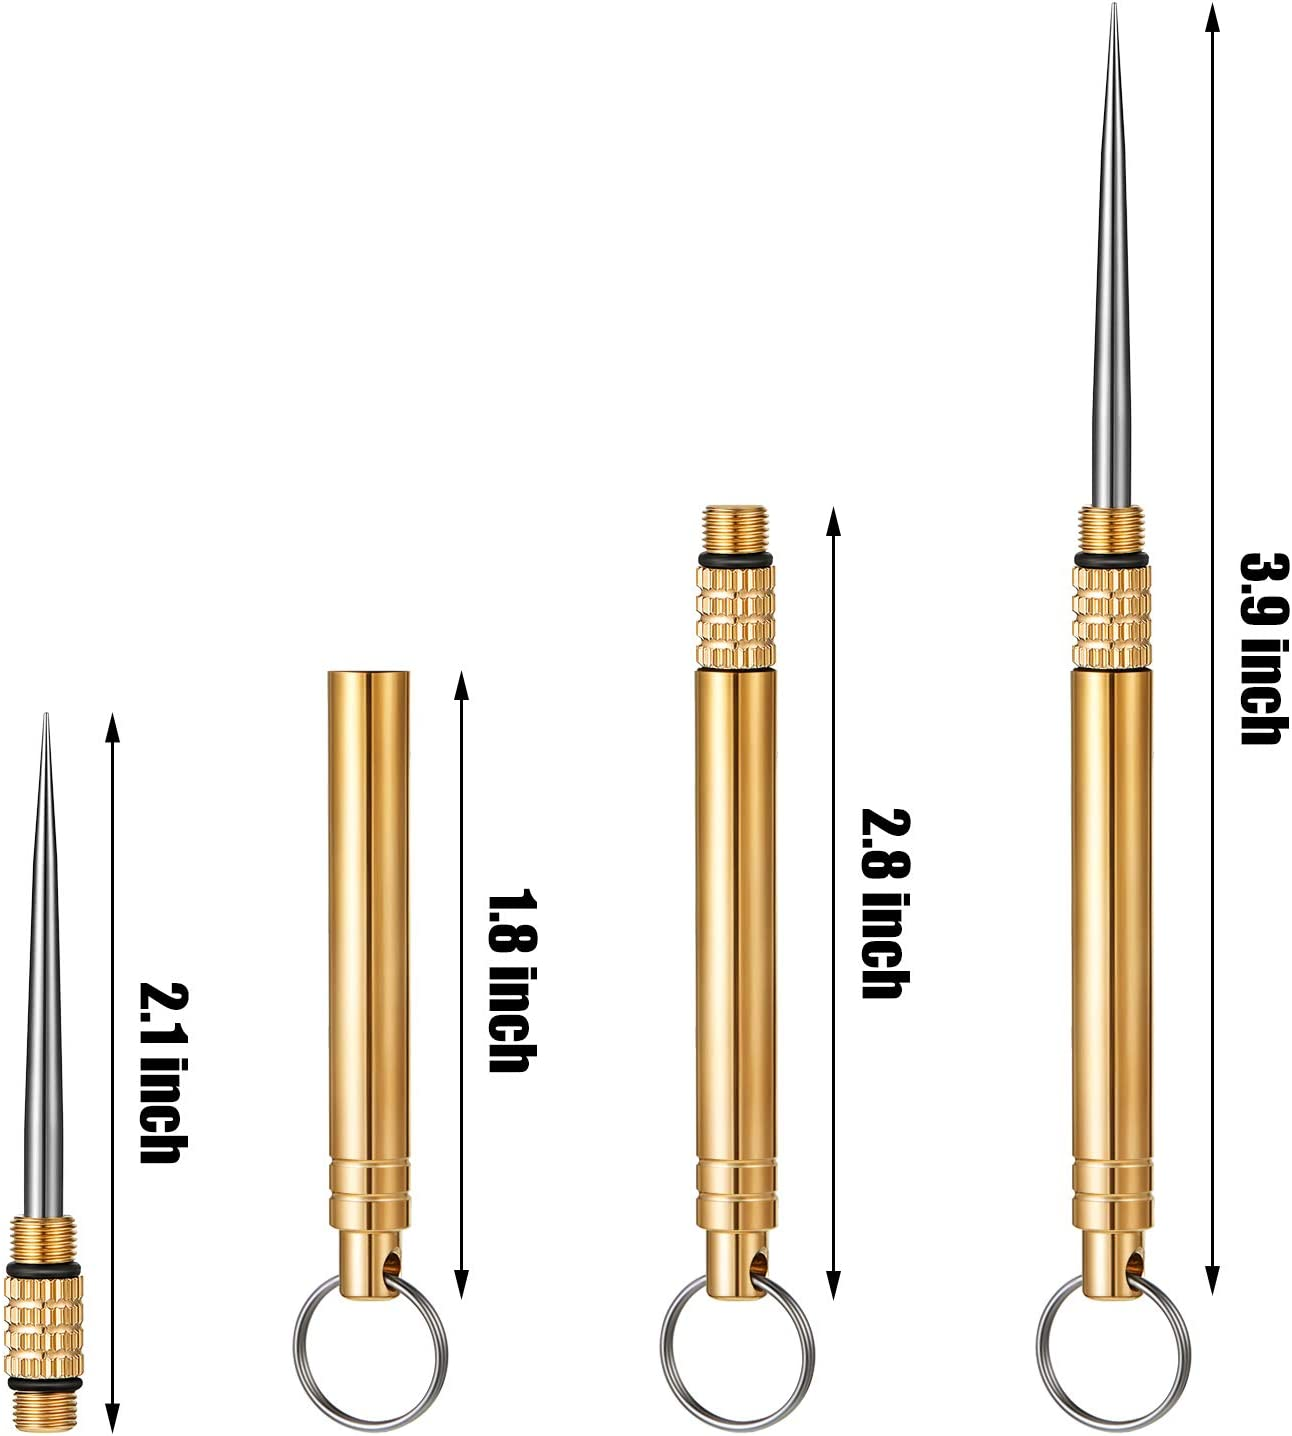 5 Pieces Portable Titanium Toothpicks Brass Pocket Toothpicks with Metal Toothpick Holder for Outdoor Picnic Camping Accessories